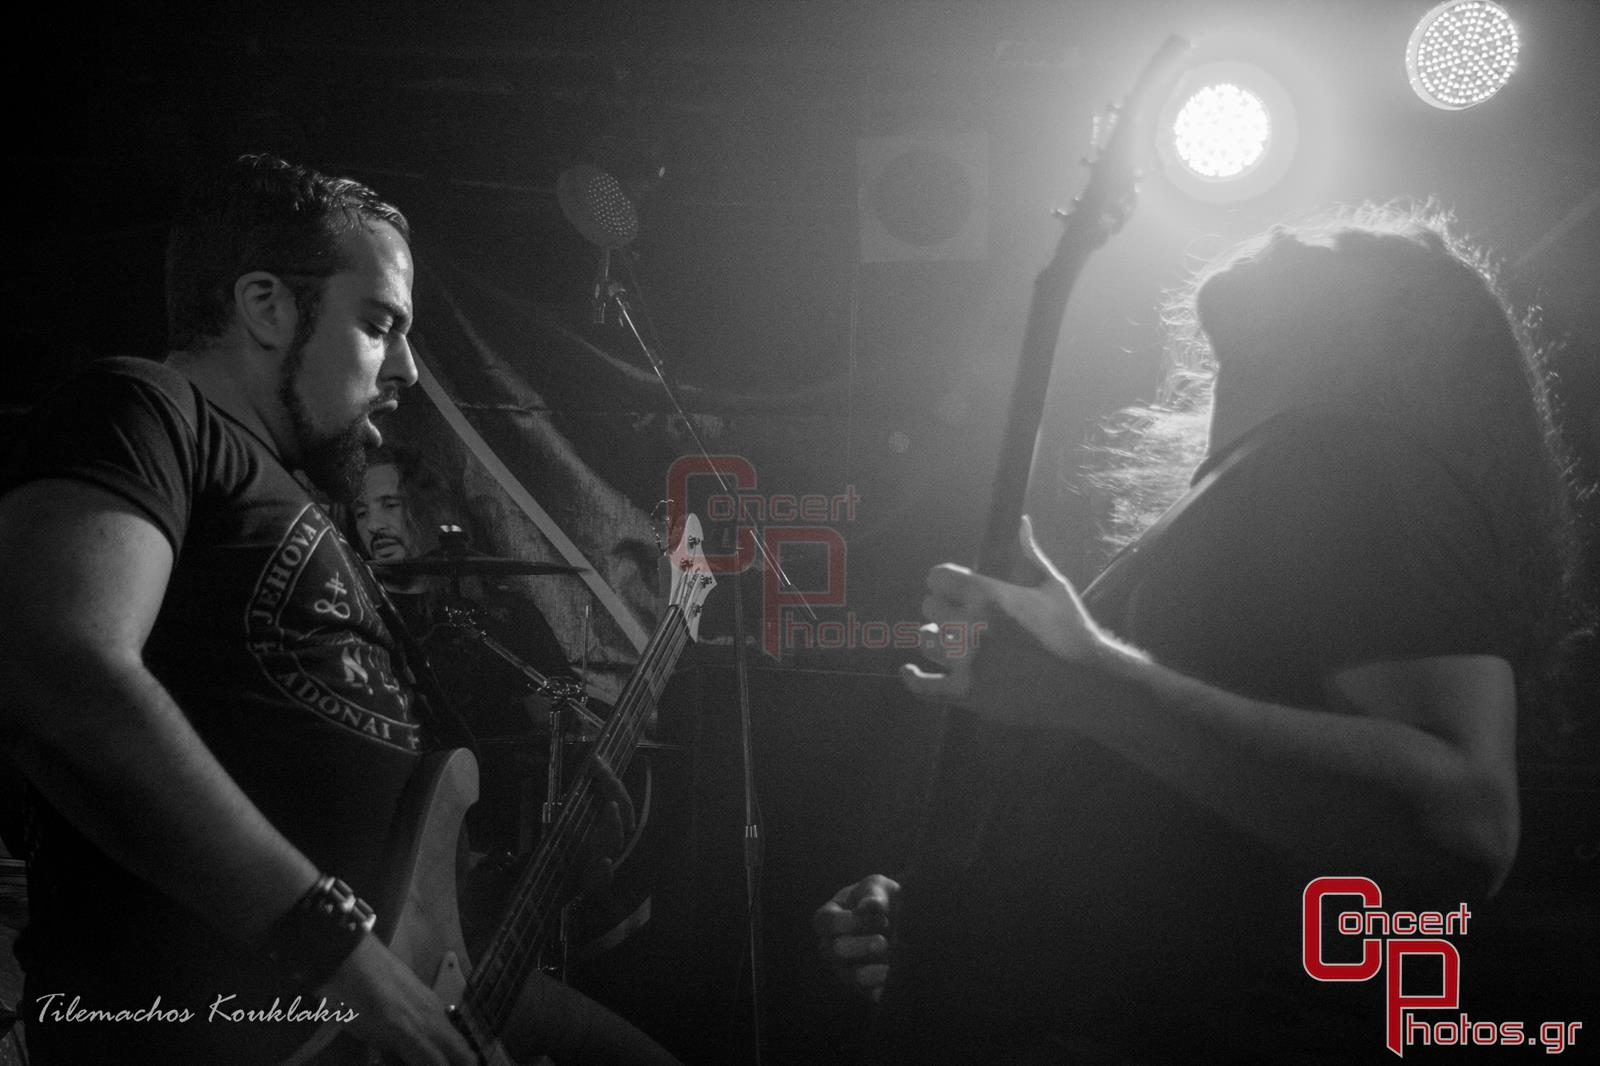 Nightstalker-Nightstalker AN Club photographer:  - concertphotos_-24